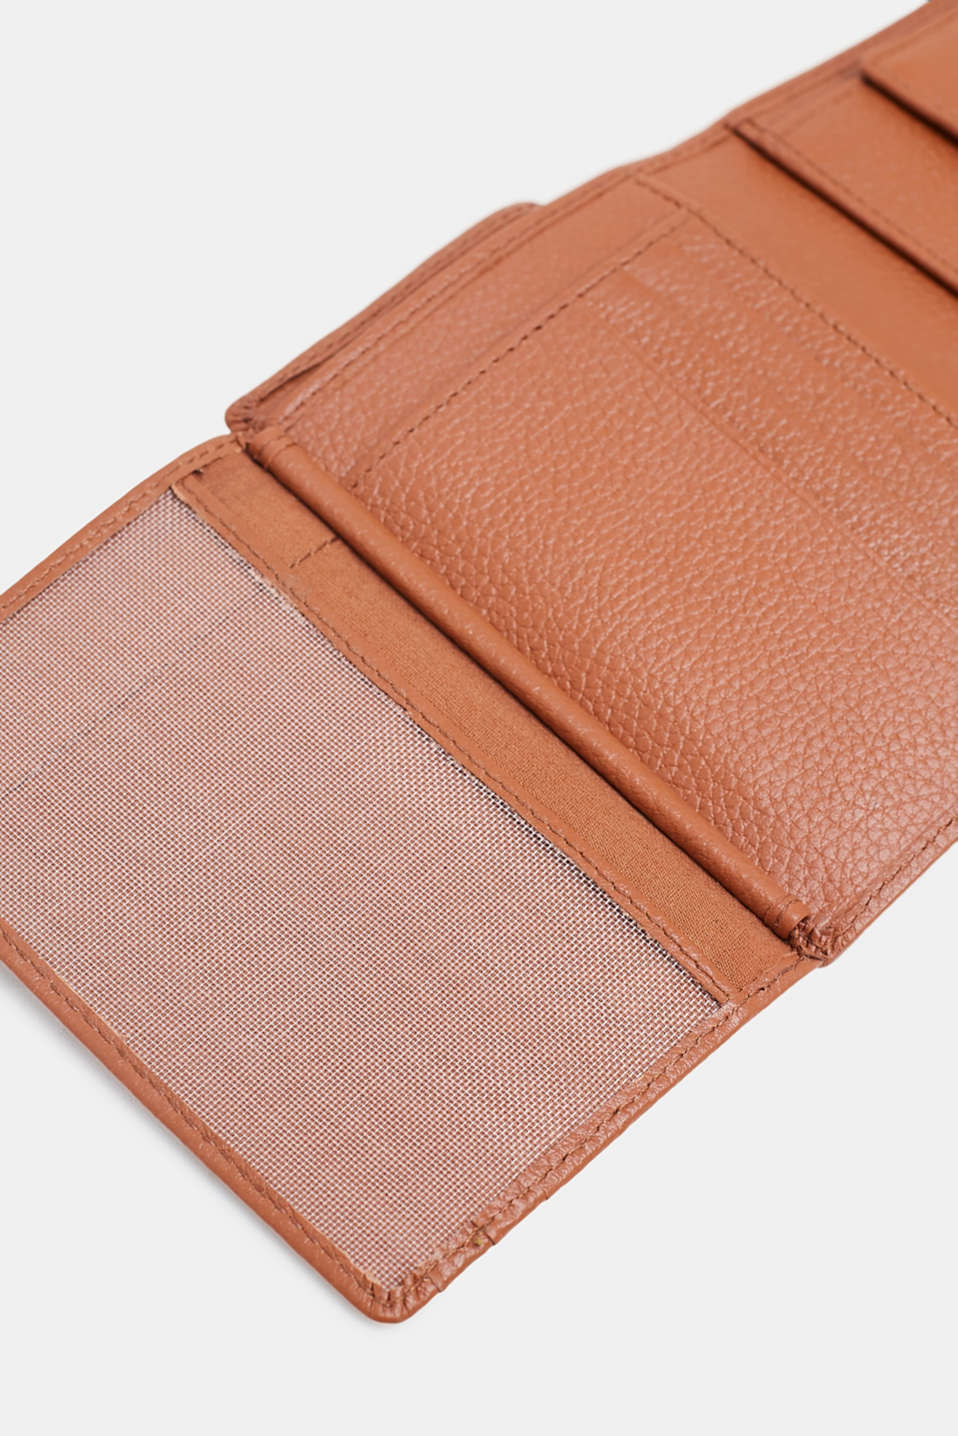 Leather purse, RUST BROWN, detail image number 2